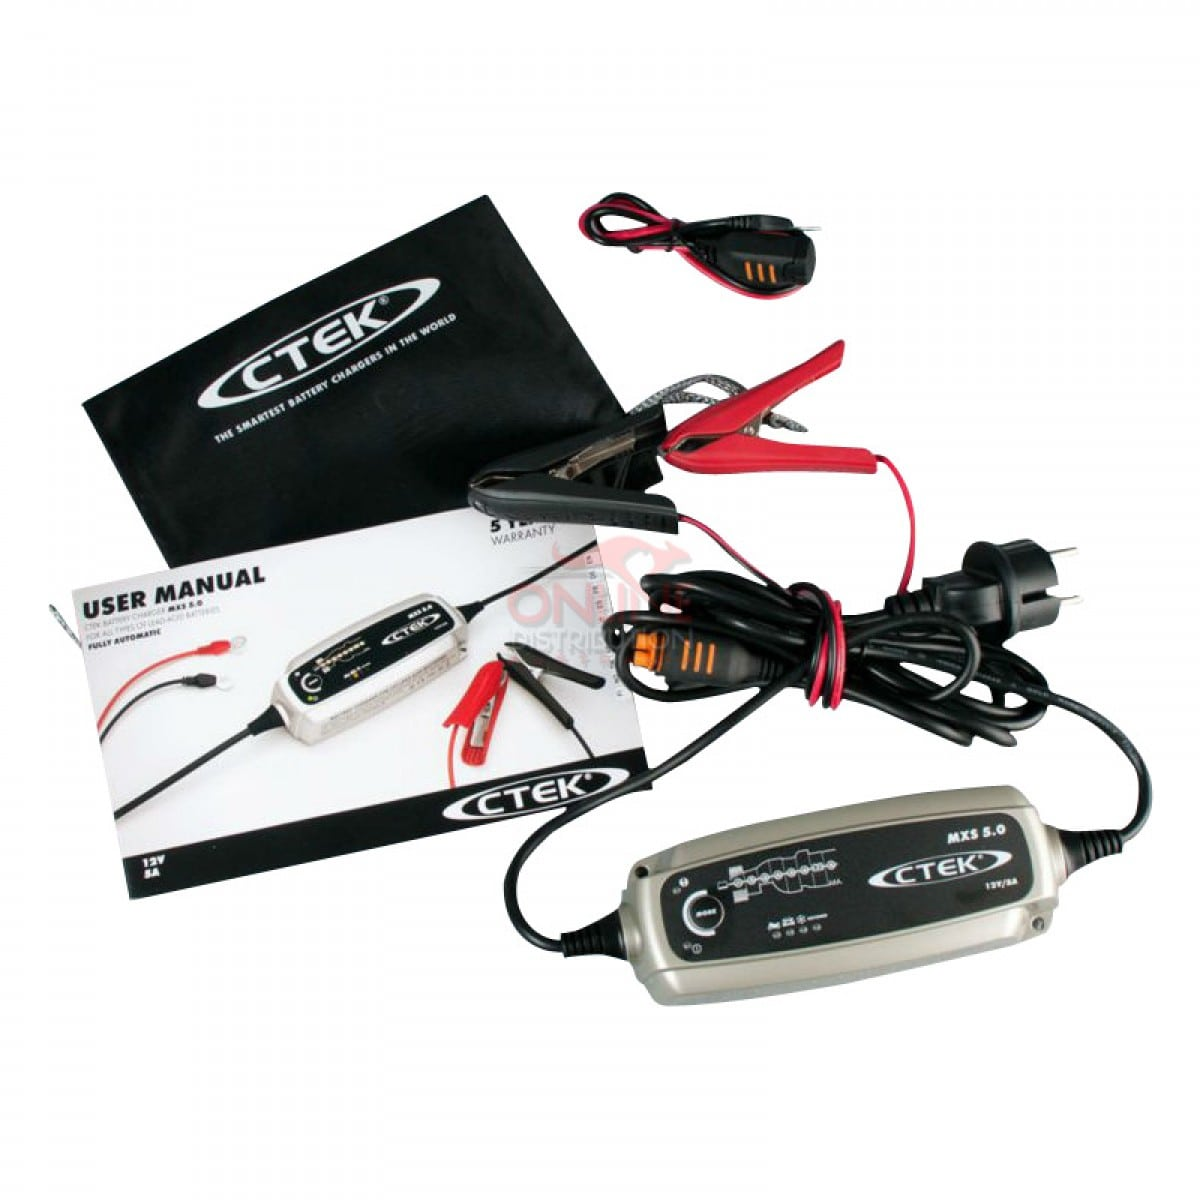 Ctek 5Amp Battery Charger and Maintainer upto 110Ah.